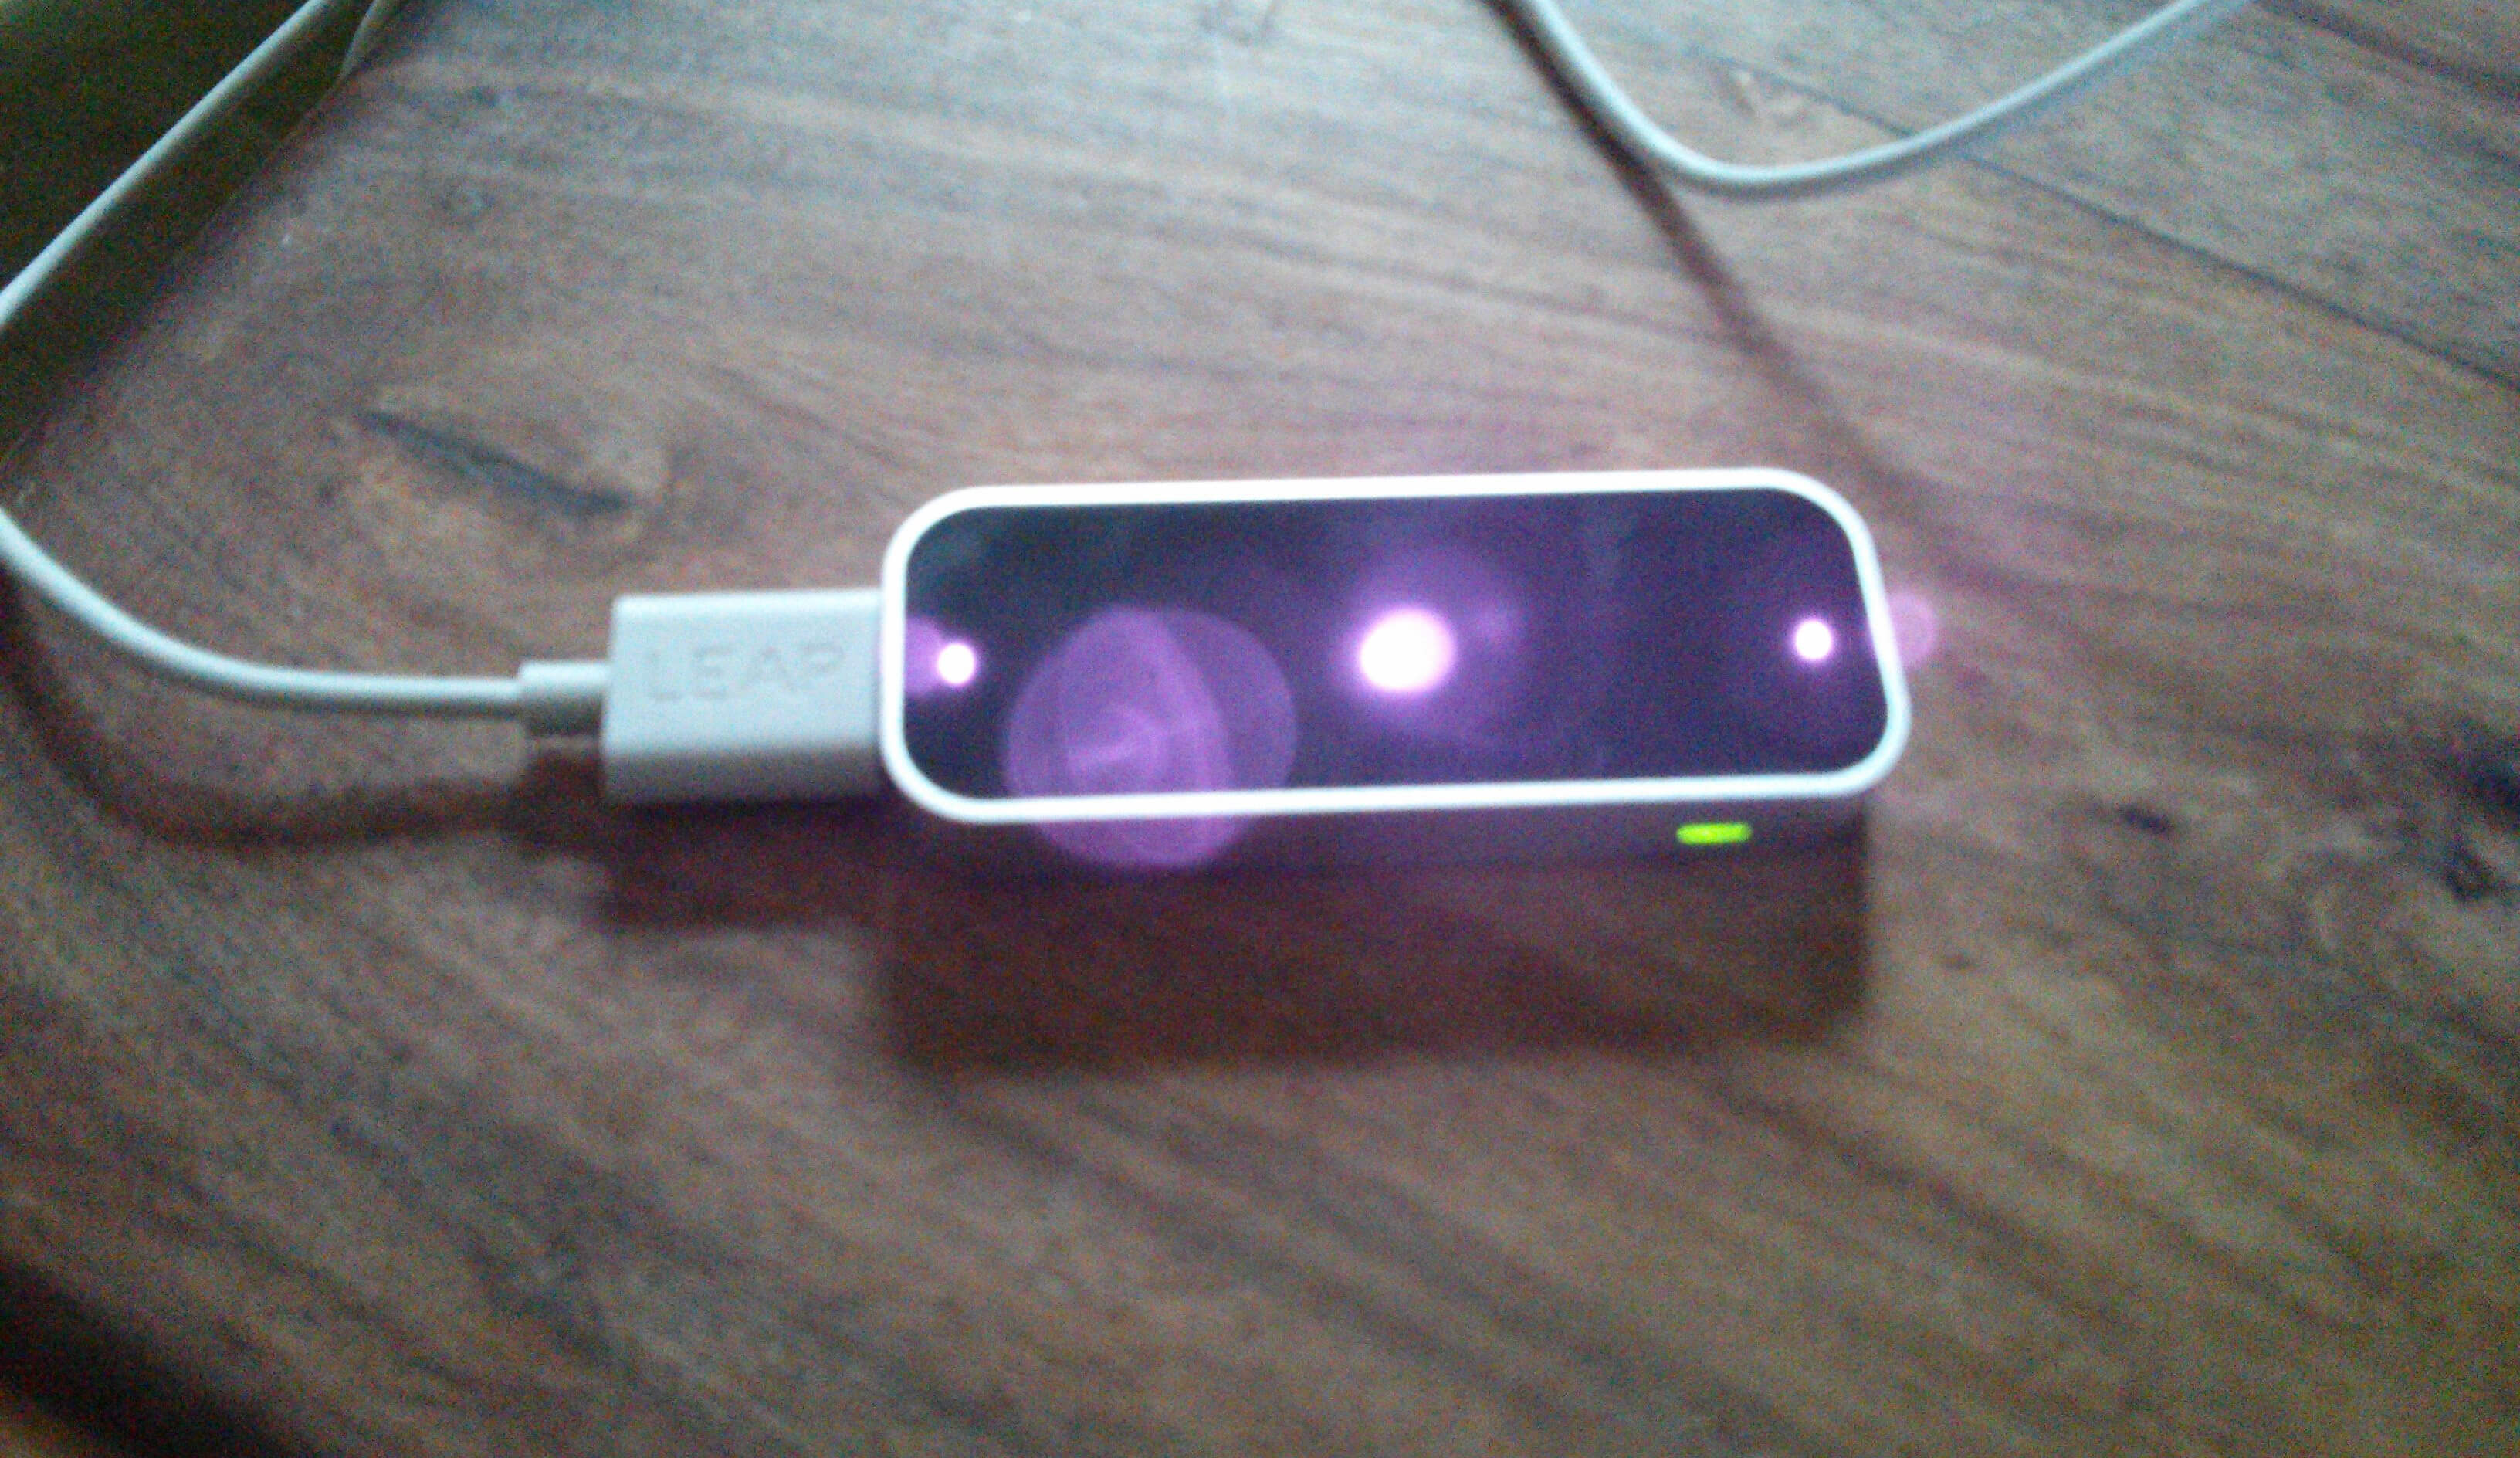 LeapMotionDevice